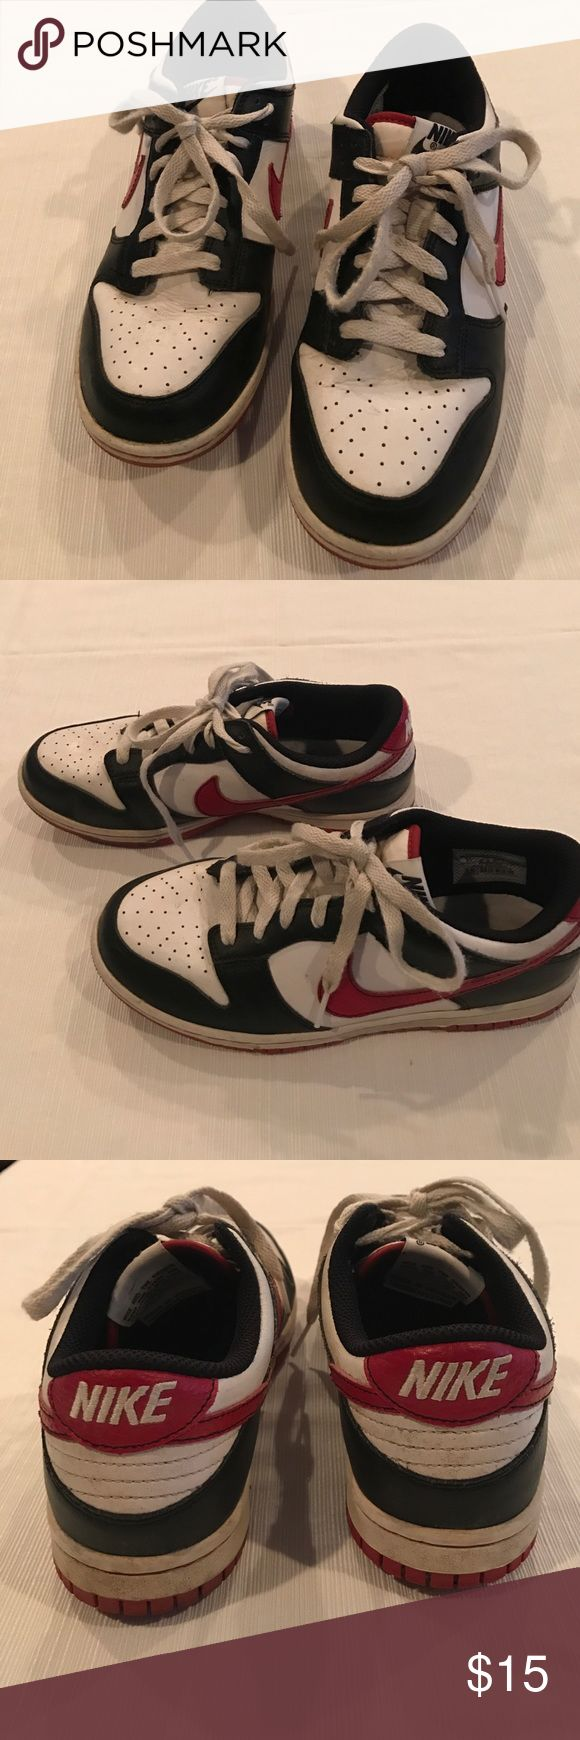 Nike Boys Golf Shoes Red, black and white boys golf shoes Nike Shoes